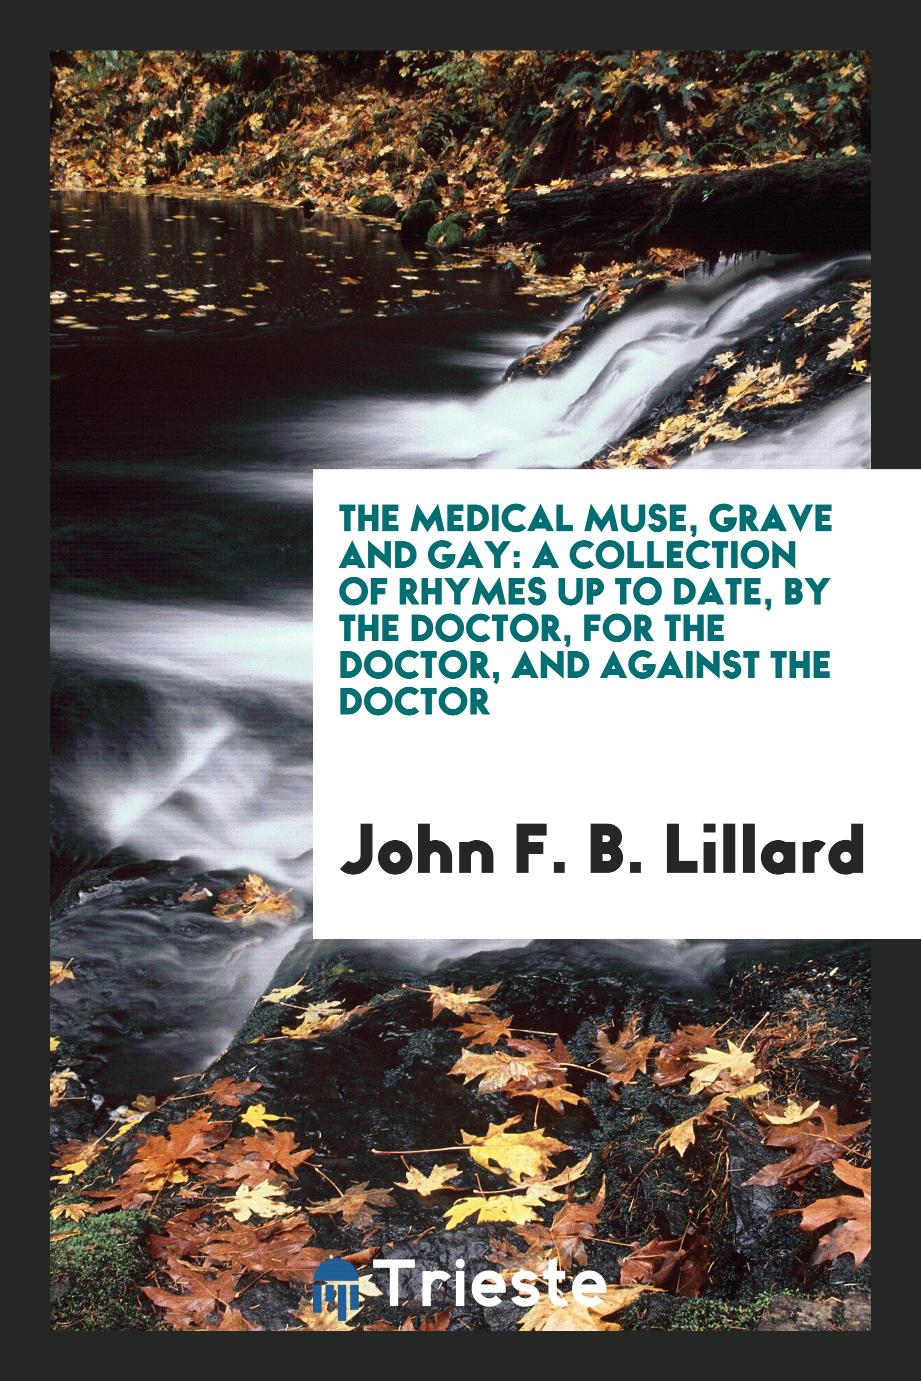 The Medical Muse, Grave and Gay: A Collection of Rhymes Up to Date, by the Doctor, for the Doctor, and Against the Doctor